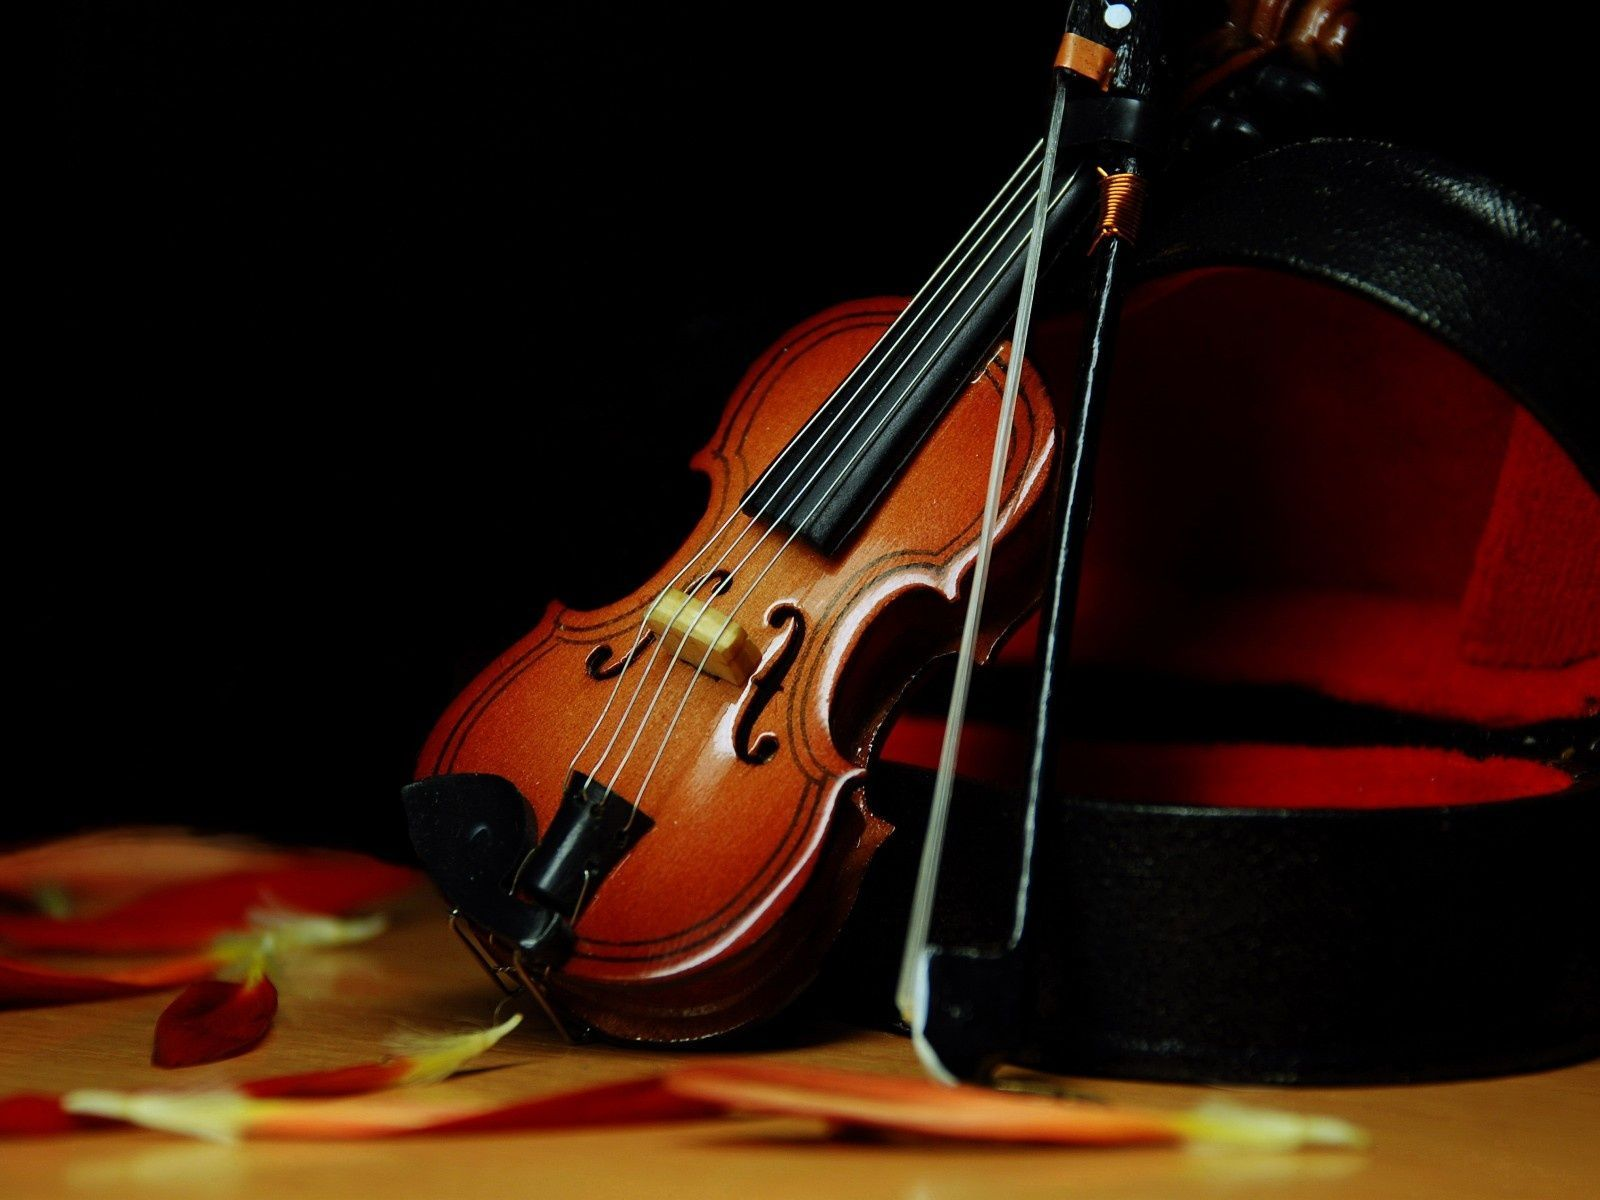 Violin Wallpapers Free Download